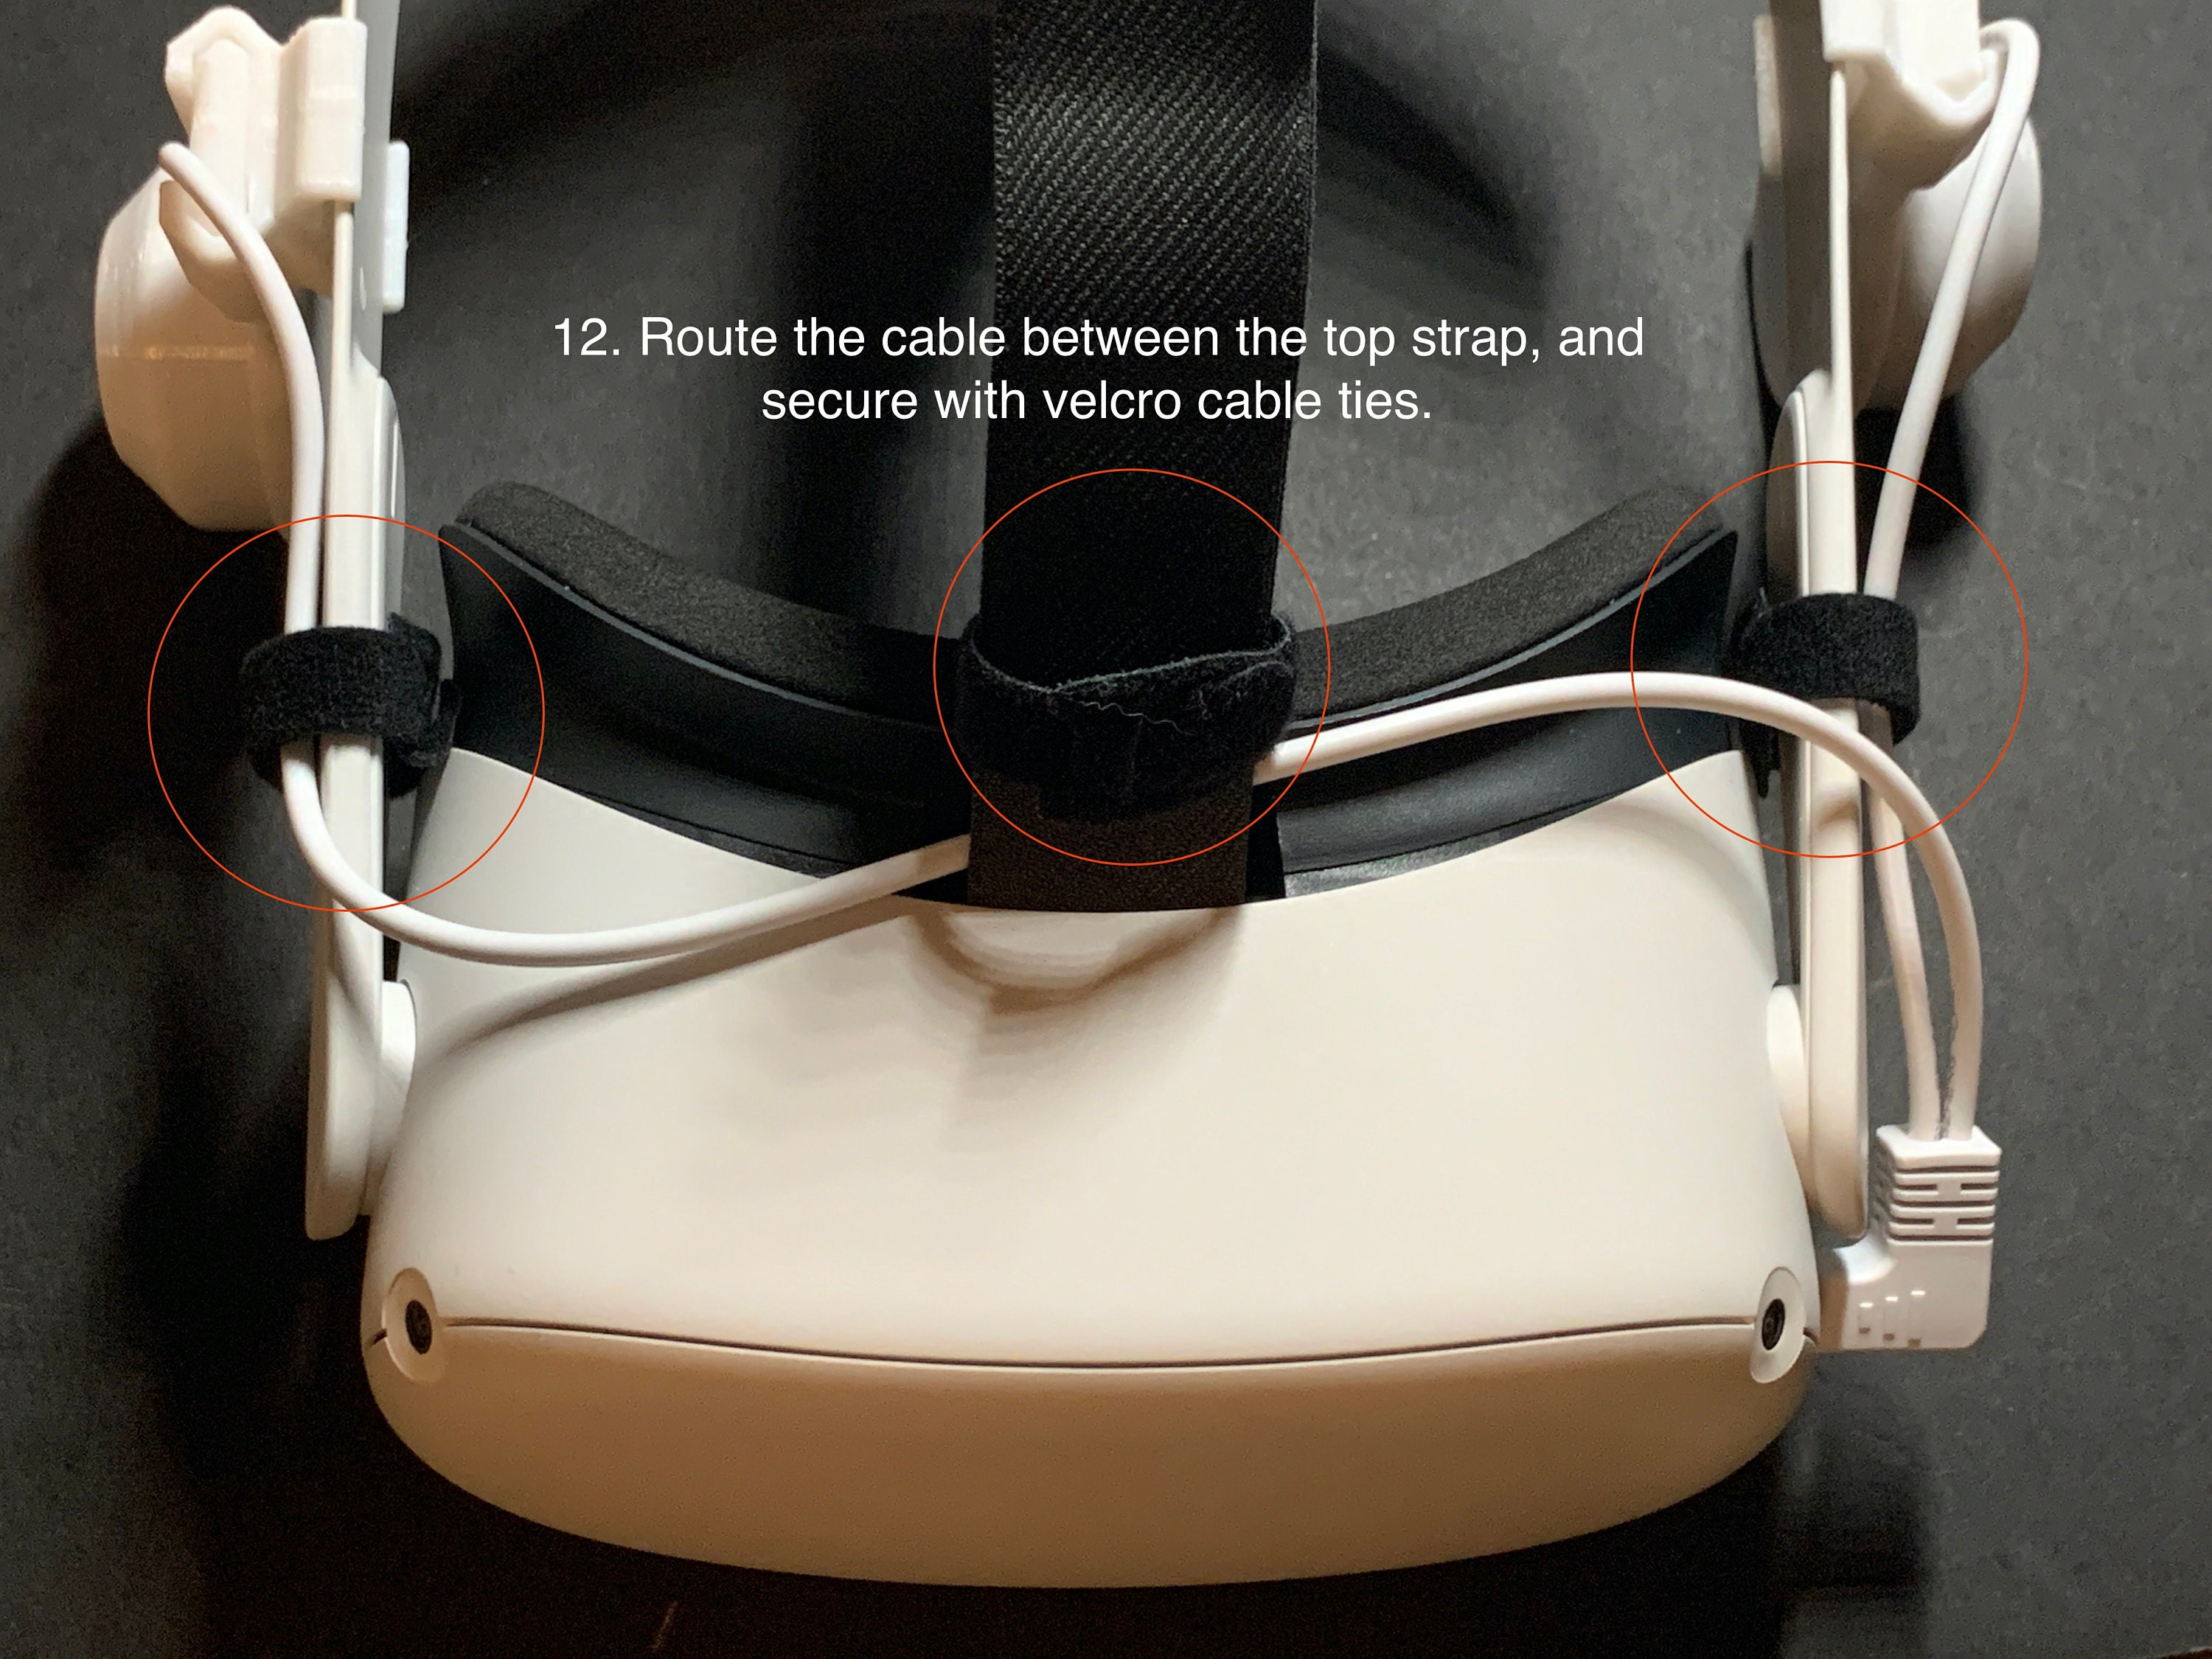 12. Route the cable between the top strap, and secure with velcro cable ties.